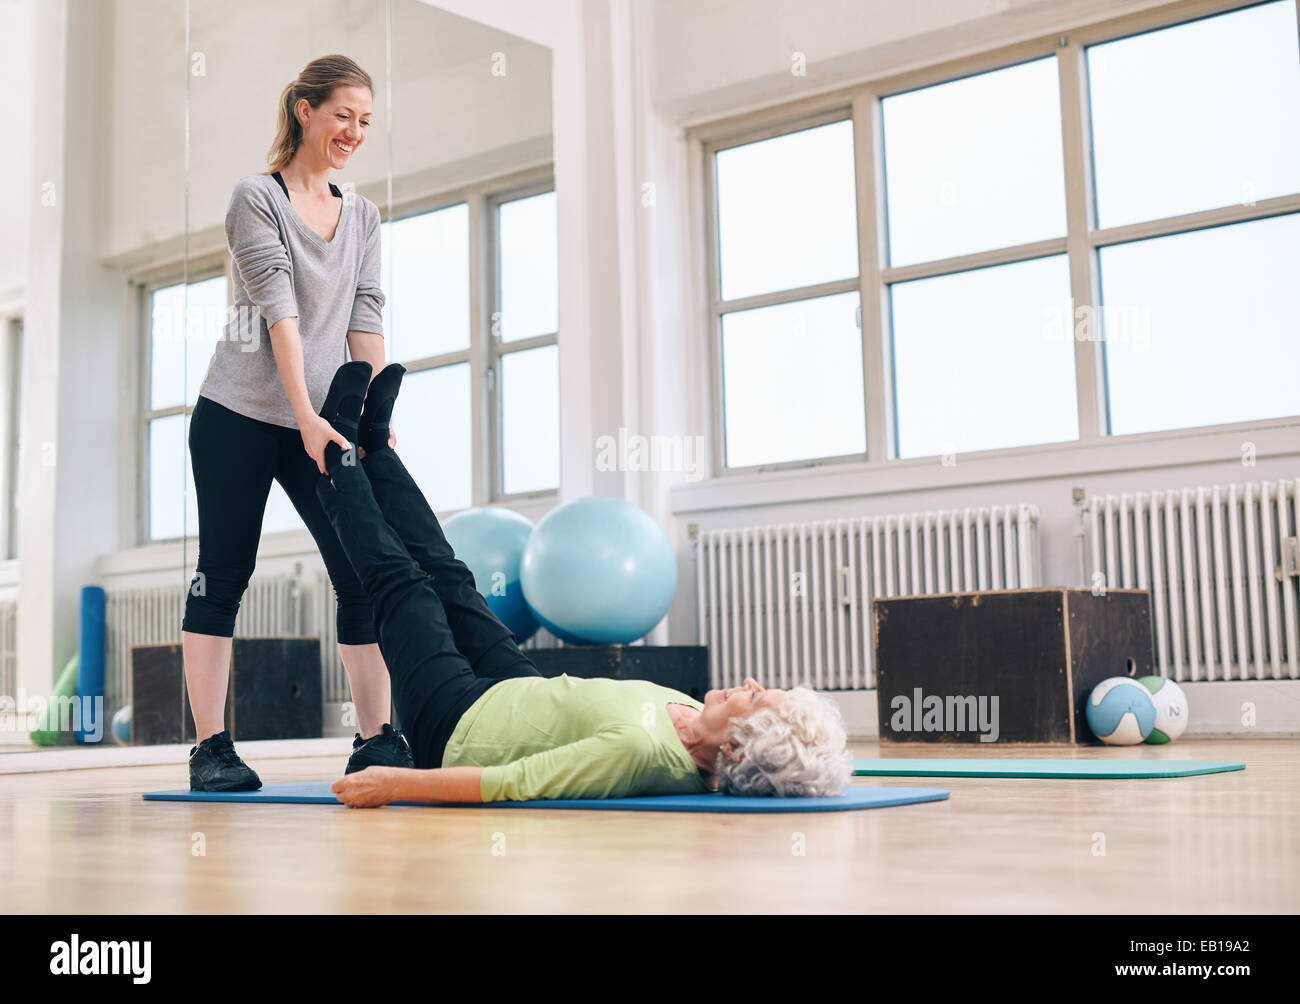 Personal trainer working with client on exercise mat at the gym. Instructor holding legs of senior woman exercising. Stock Photo